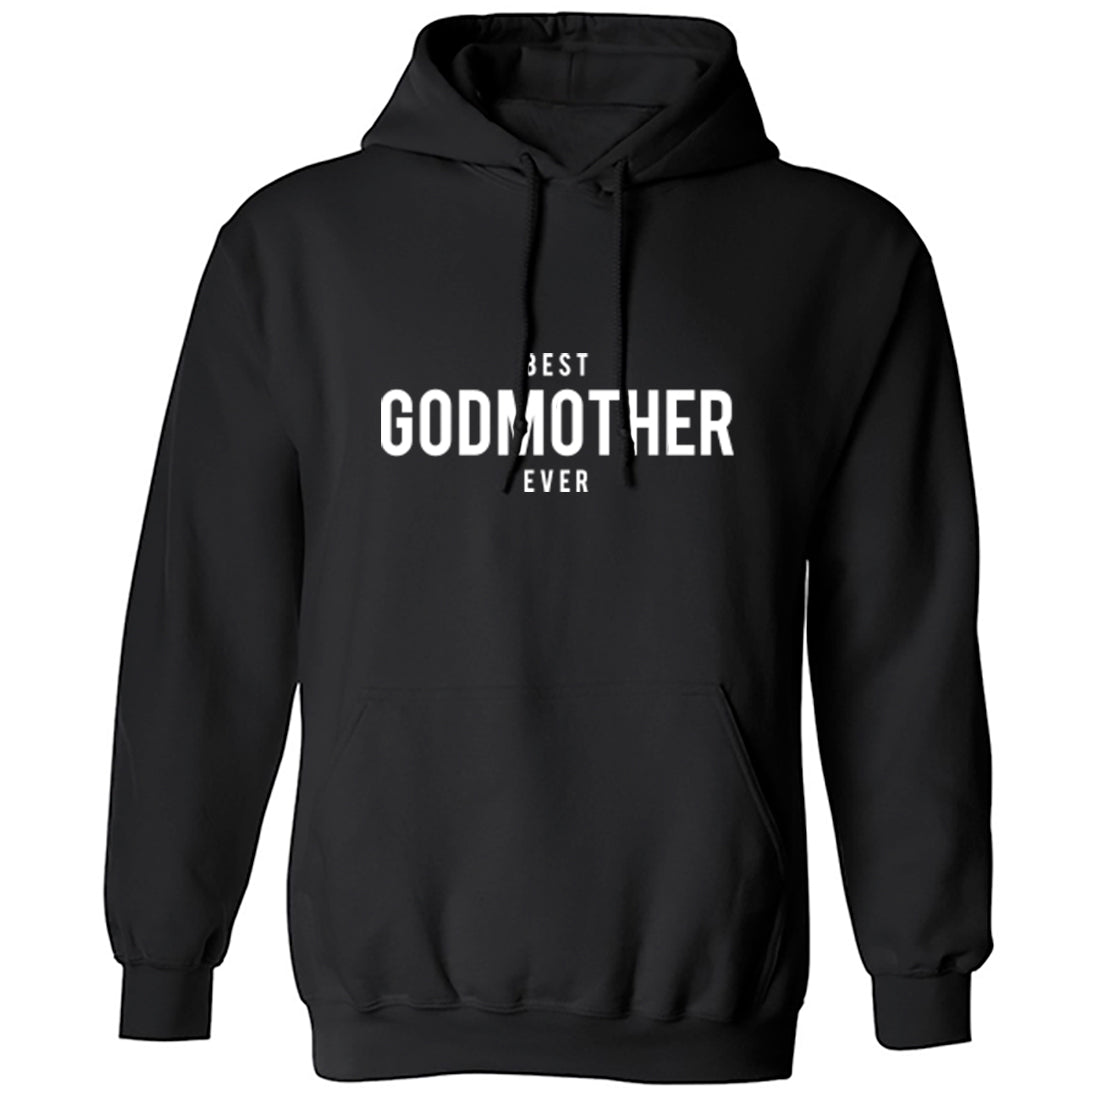 Best Godmother Ever Unisex Hoodie K1479 - Illustrated Identity Ltd.